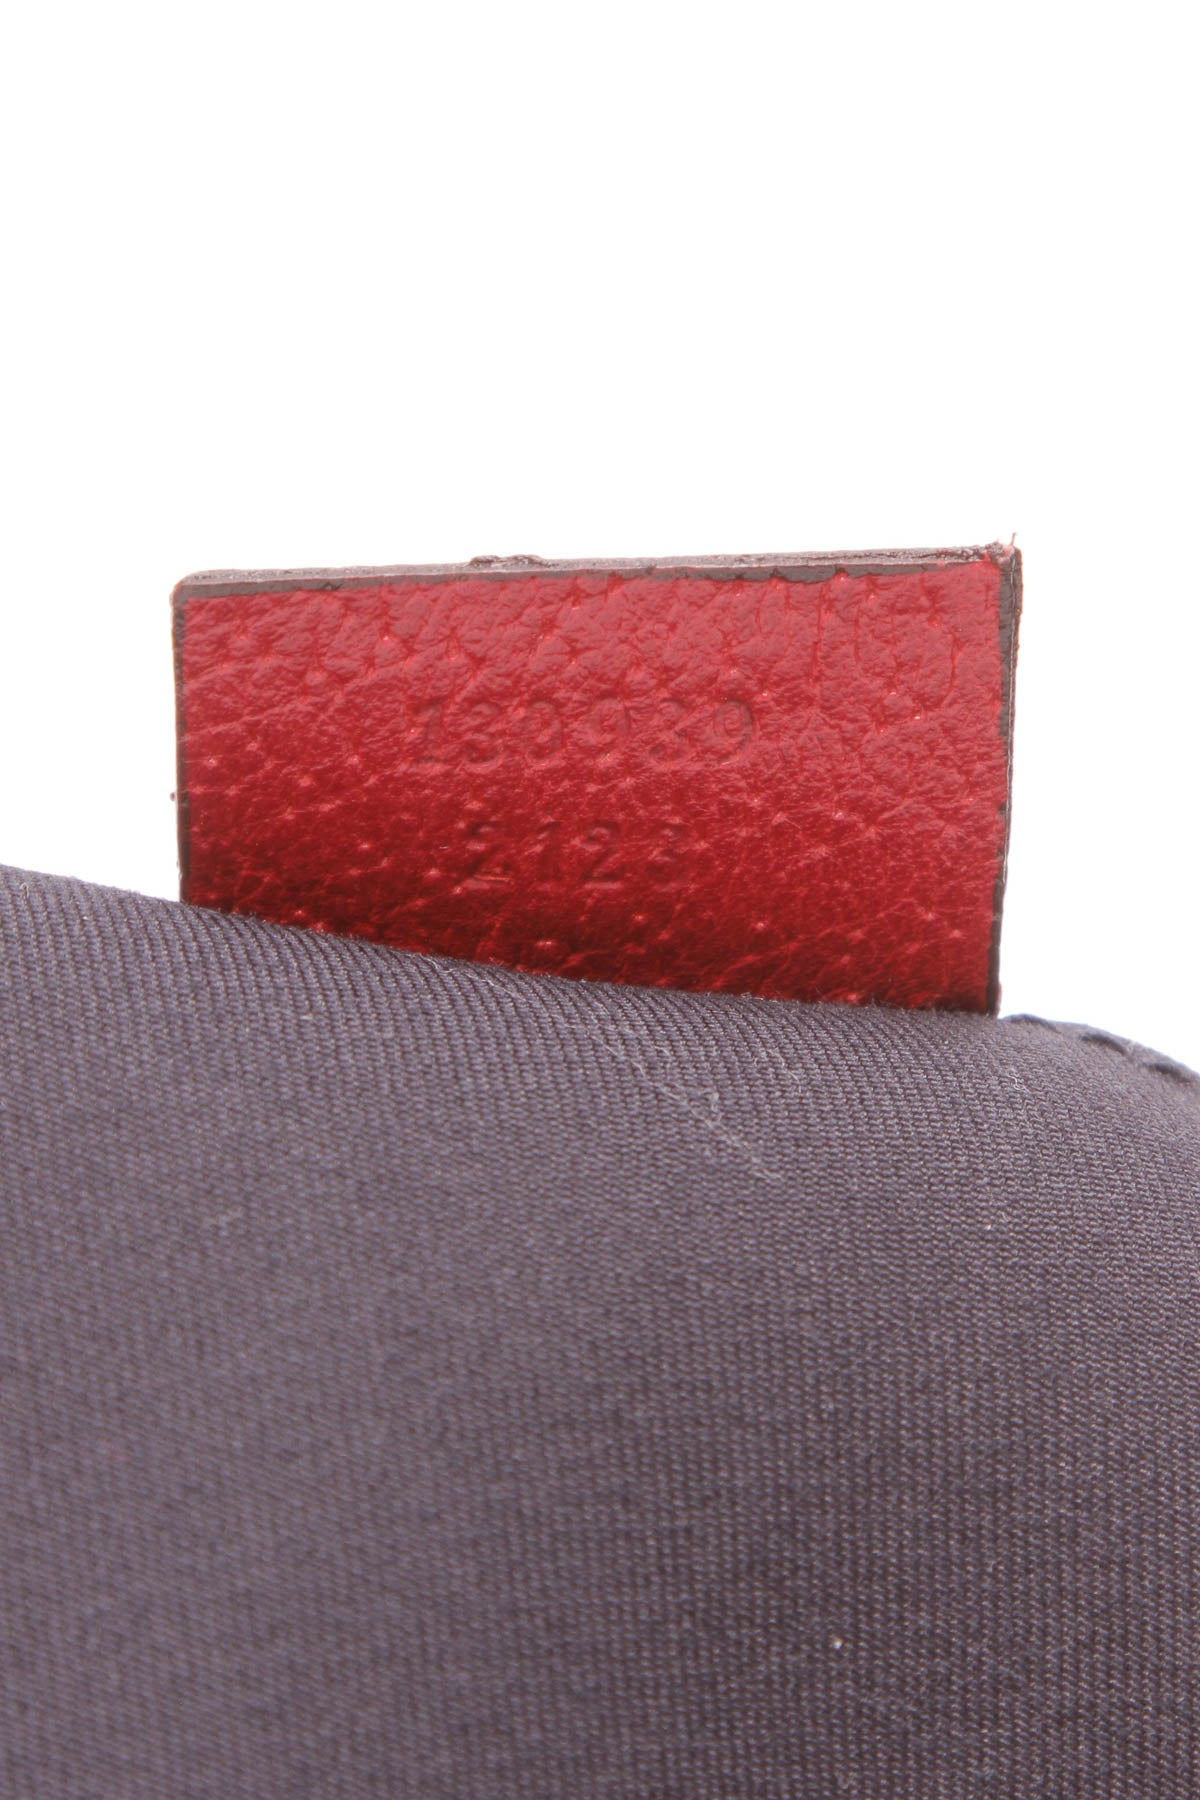 D-Ring Abbey Pochette Bag - Navy Signature Canvas/ Red